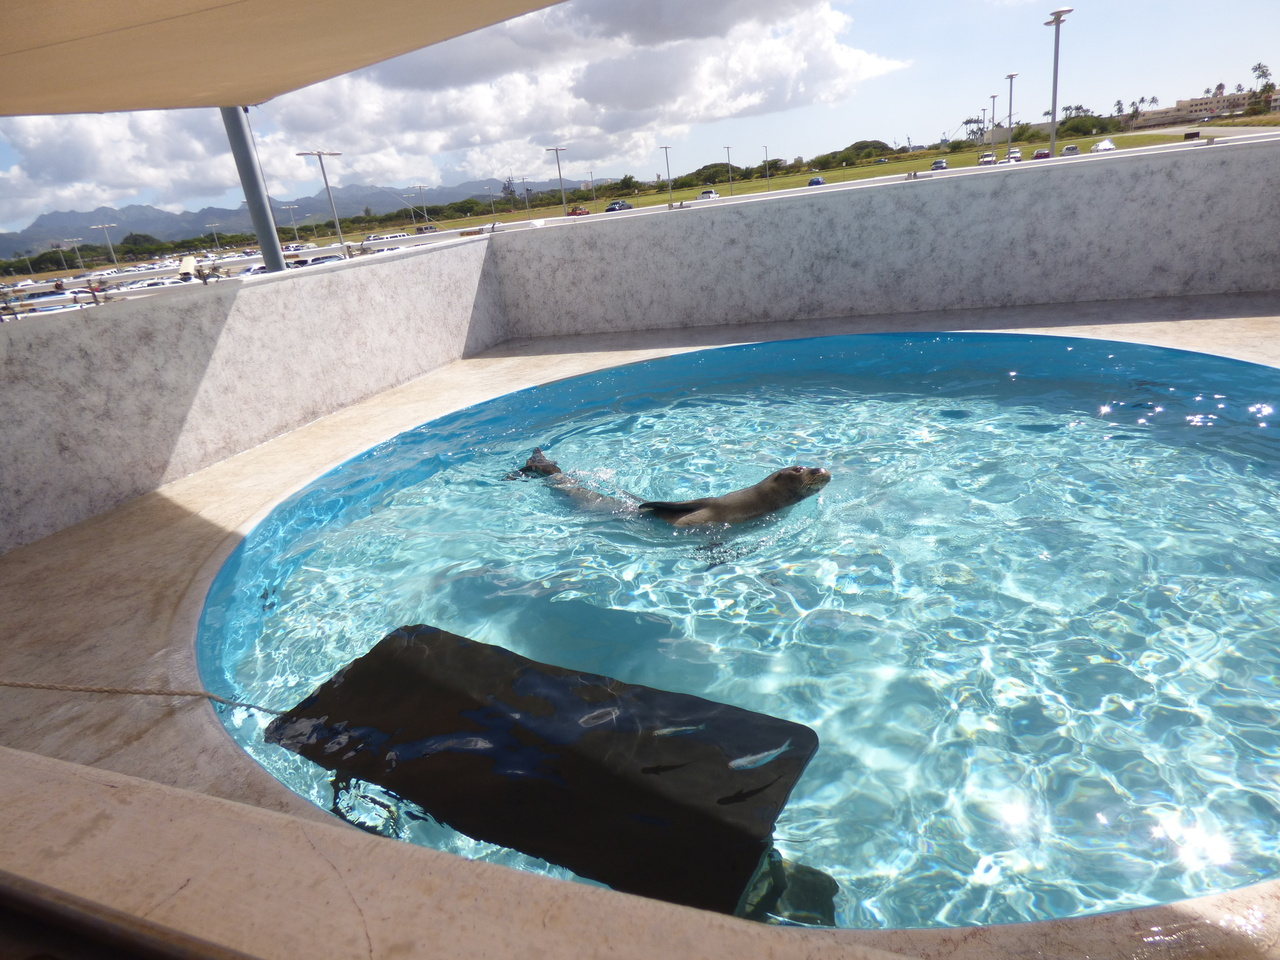 RO28 swimming in the pool at NOAA facility.